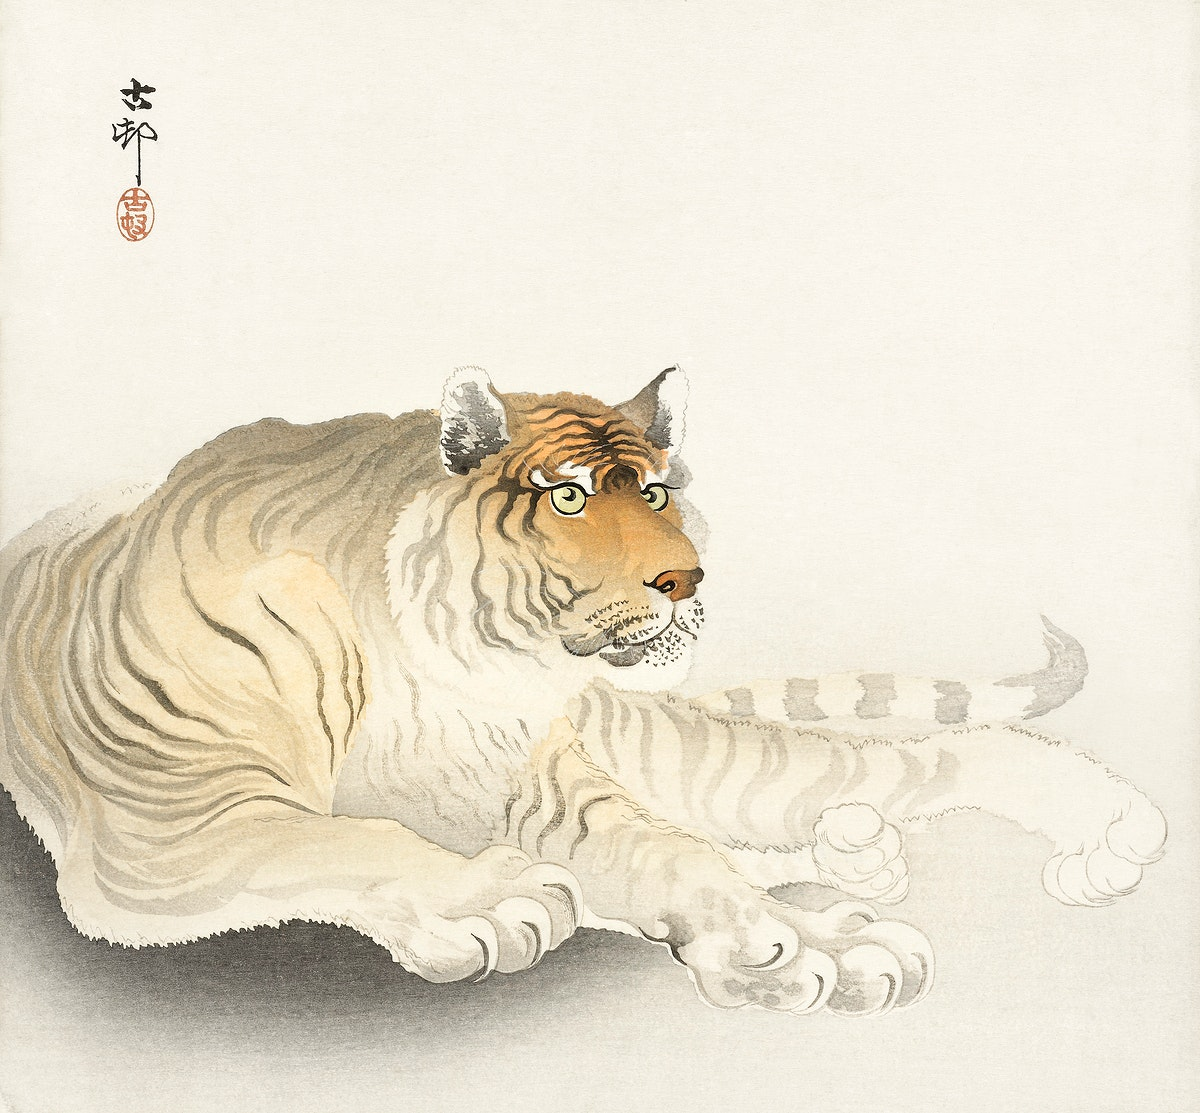 Tiger (1900 - 1930) by Ohara Koson (1877-1945). Original from The Rijksmuseum. Digitally enhanced by rawpixel.